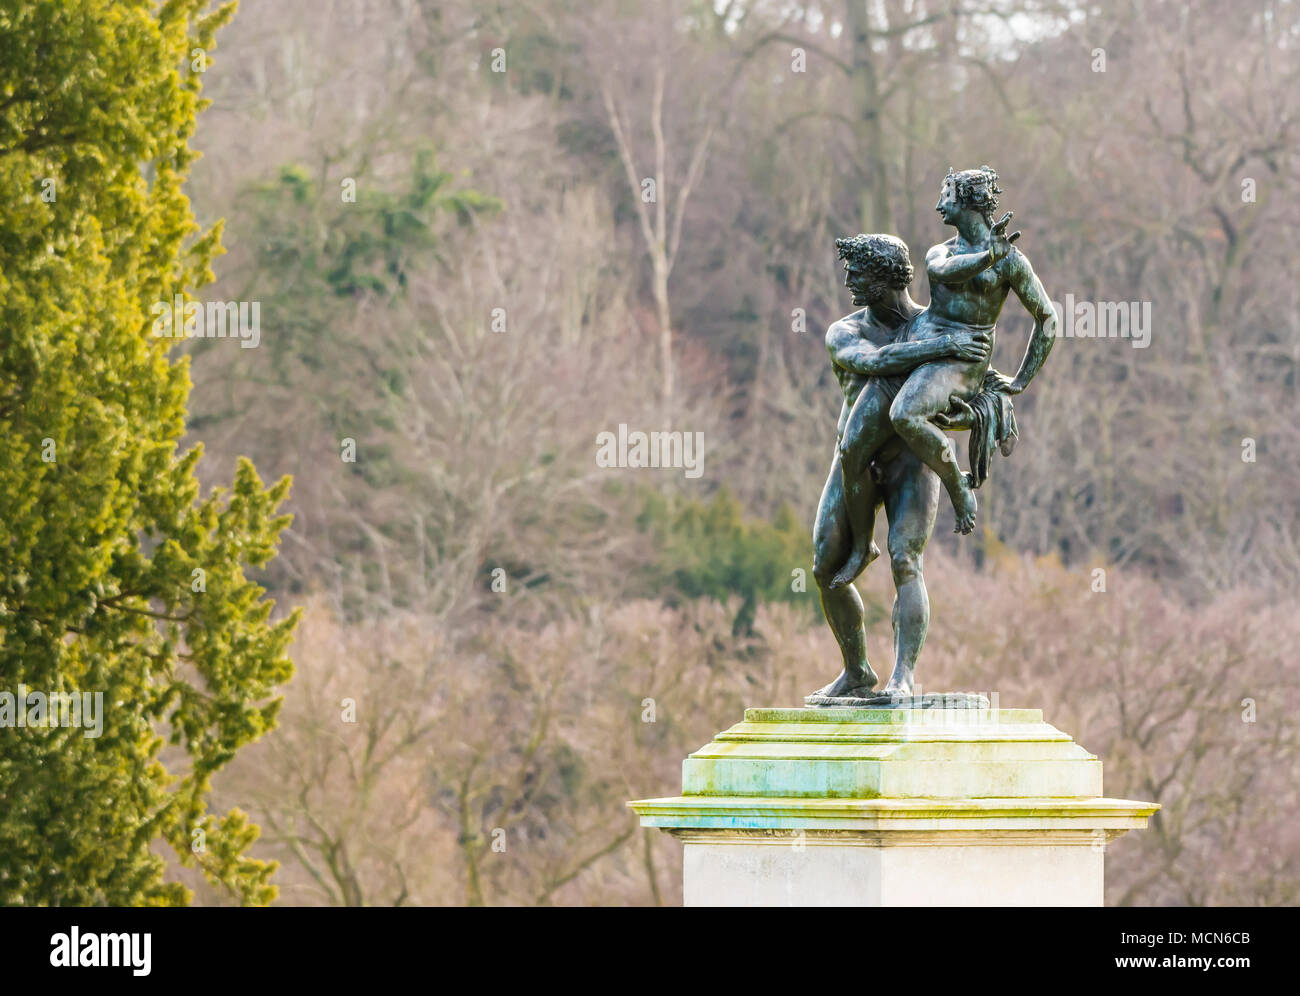 Bronze statue at Cliveden House, Buckinghamshire, UK - Stock Image